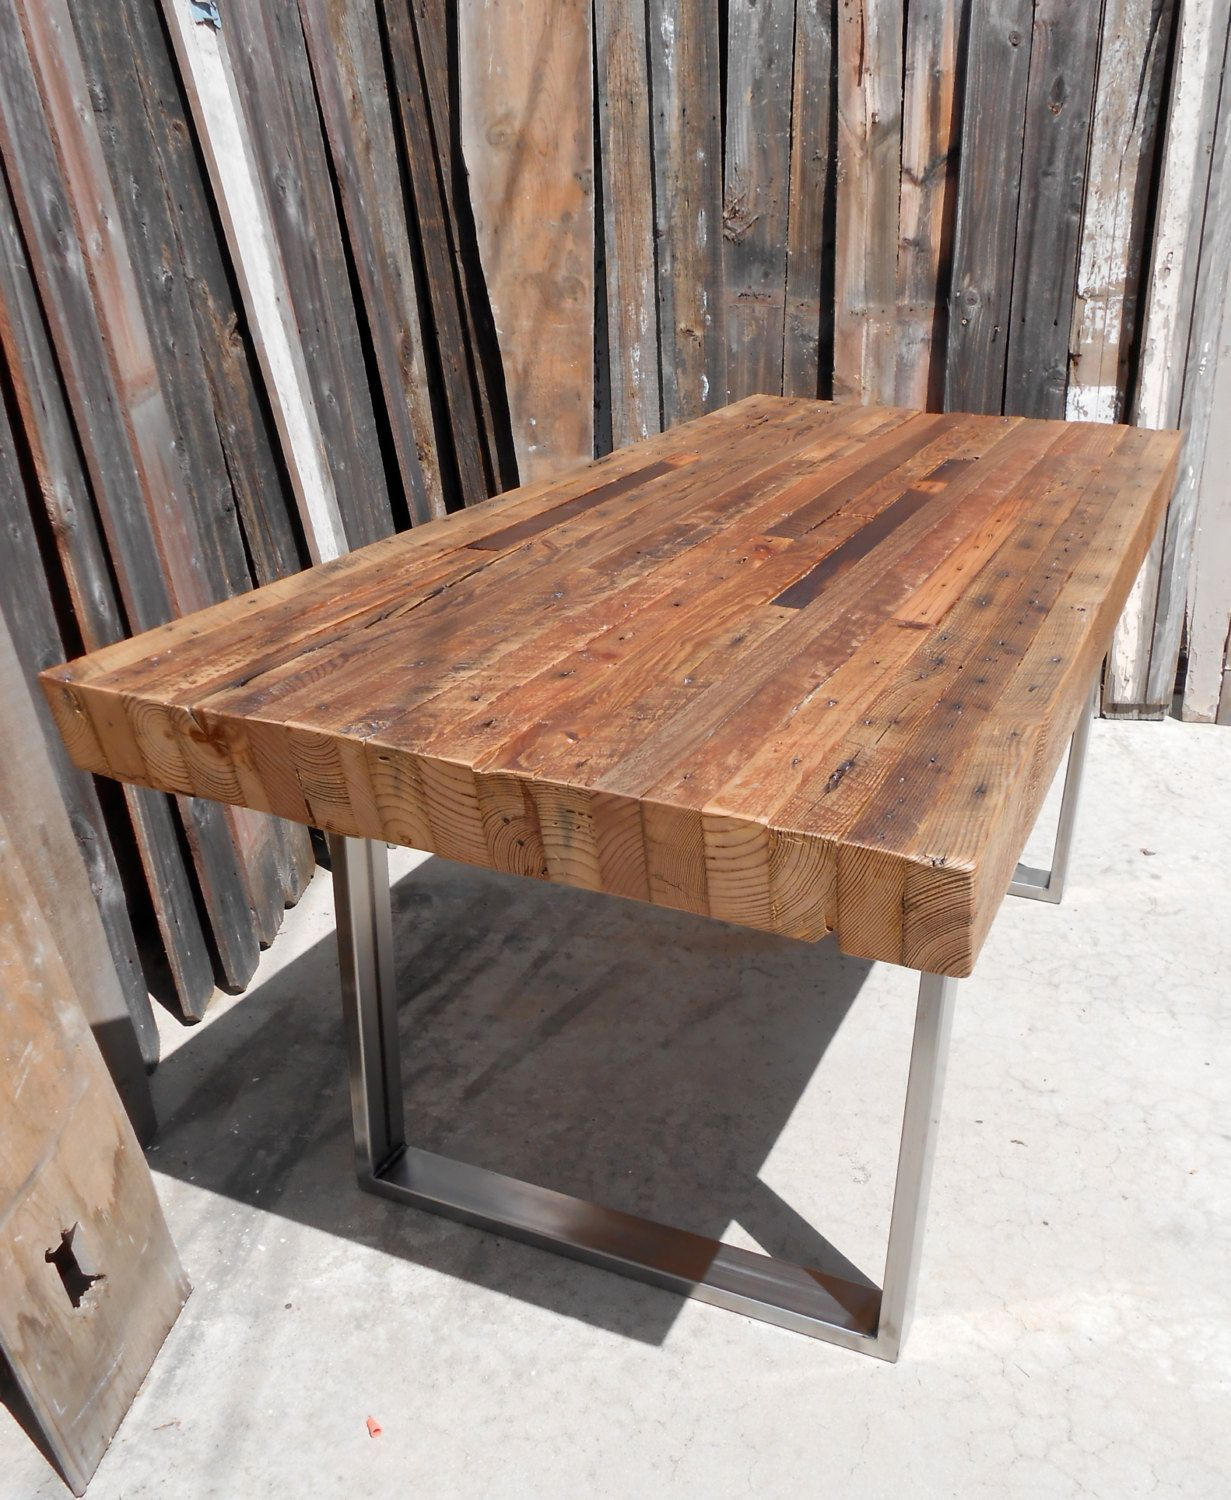 Dining Table: Custom Outdoor/ Indoor Rustic Industrial Reclaimed Wood  Dining Table / CoffeeTable(